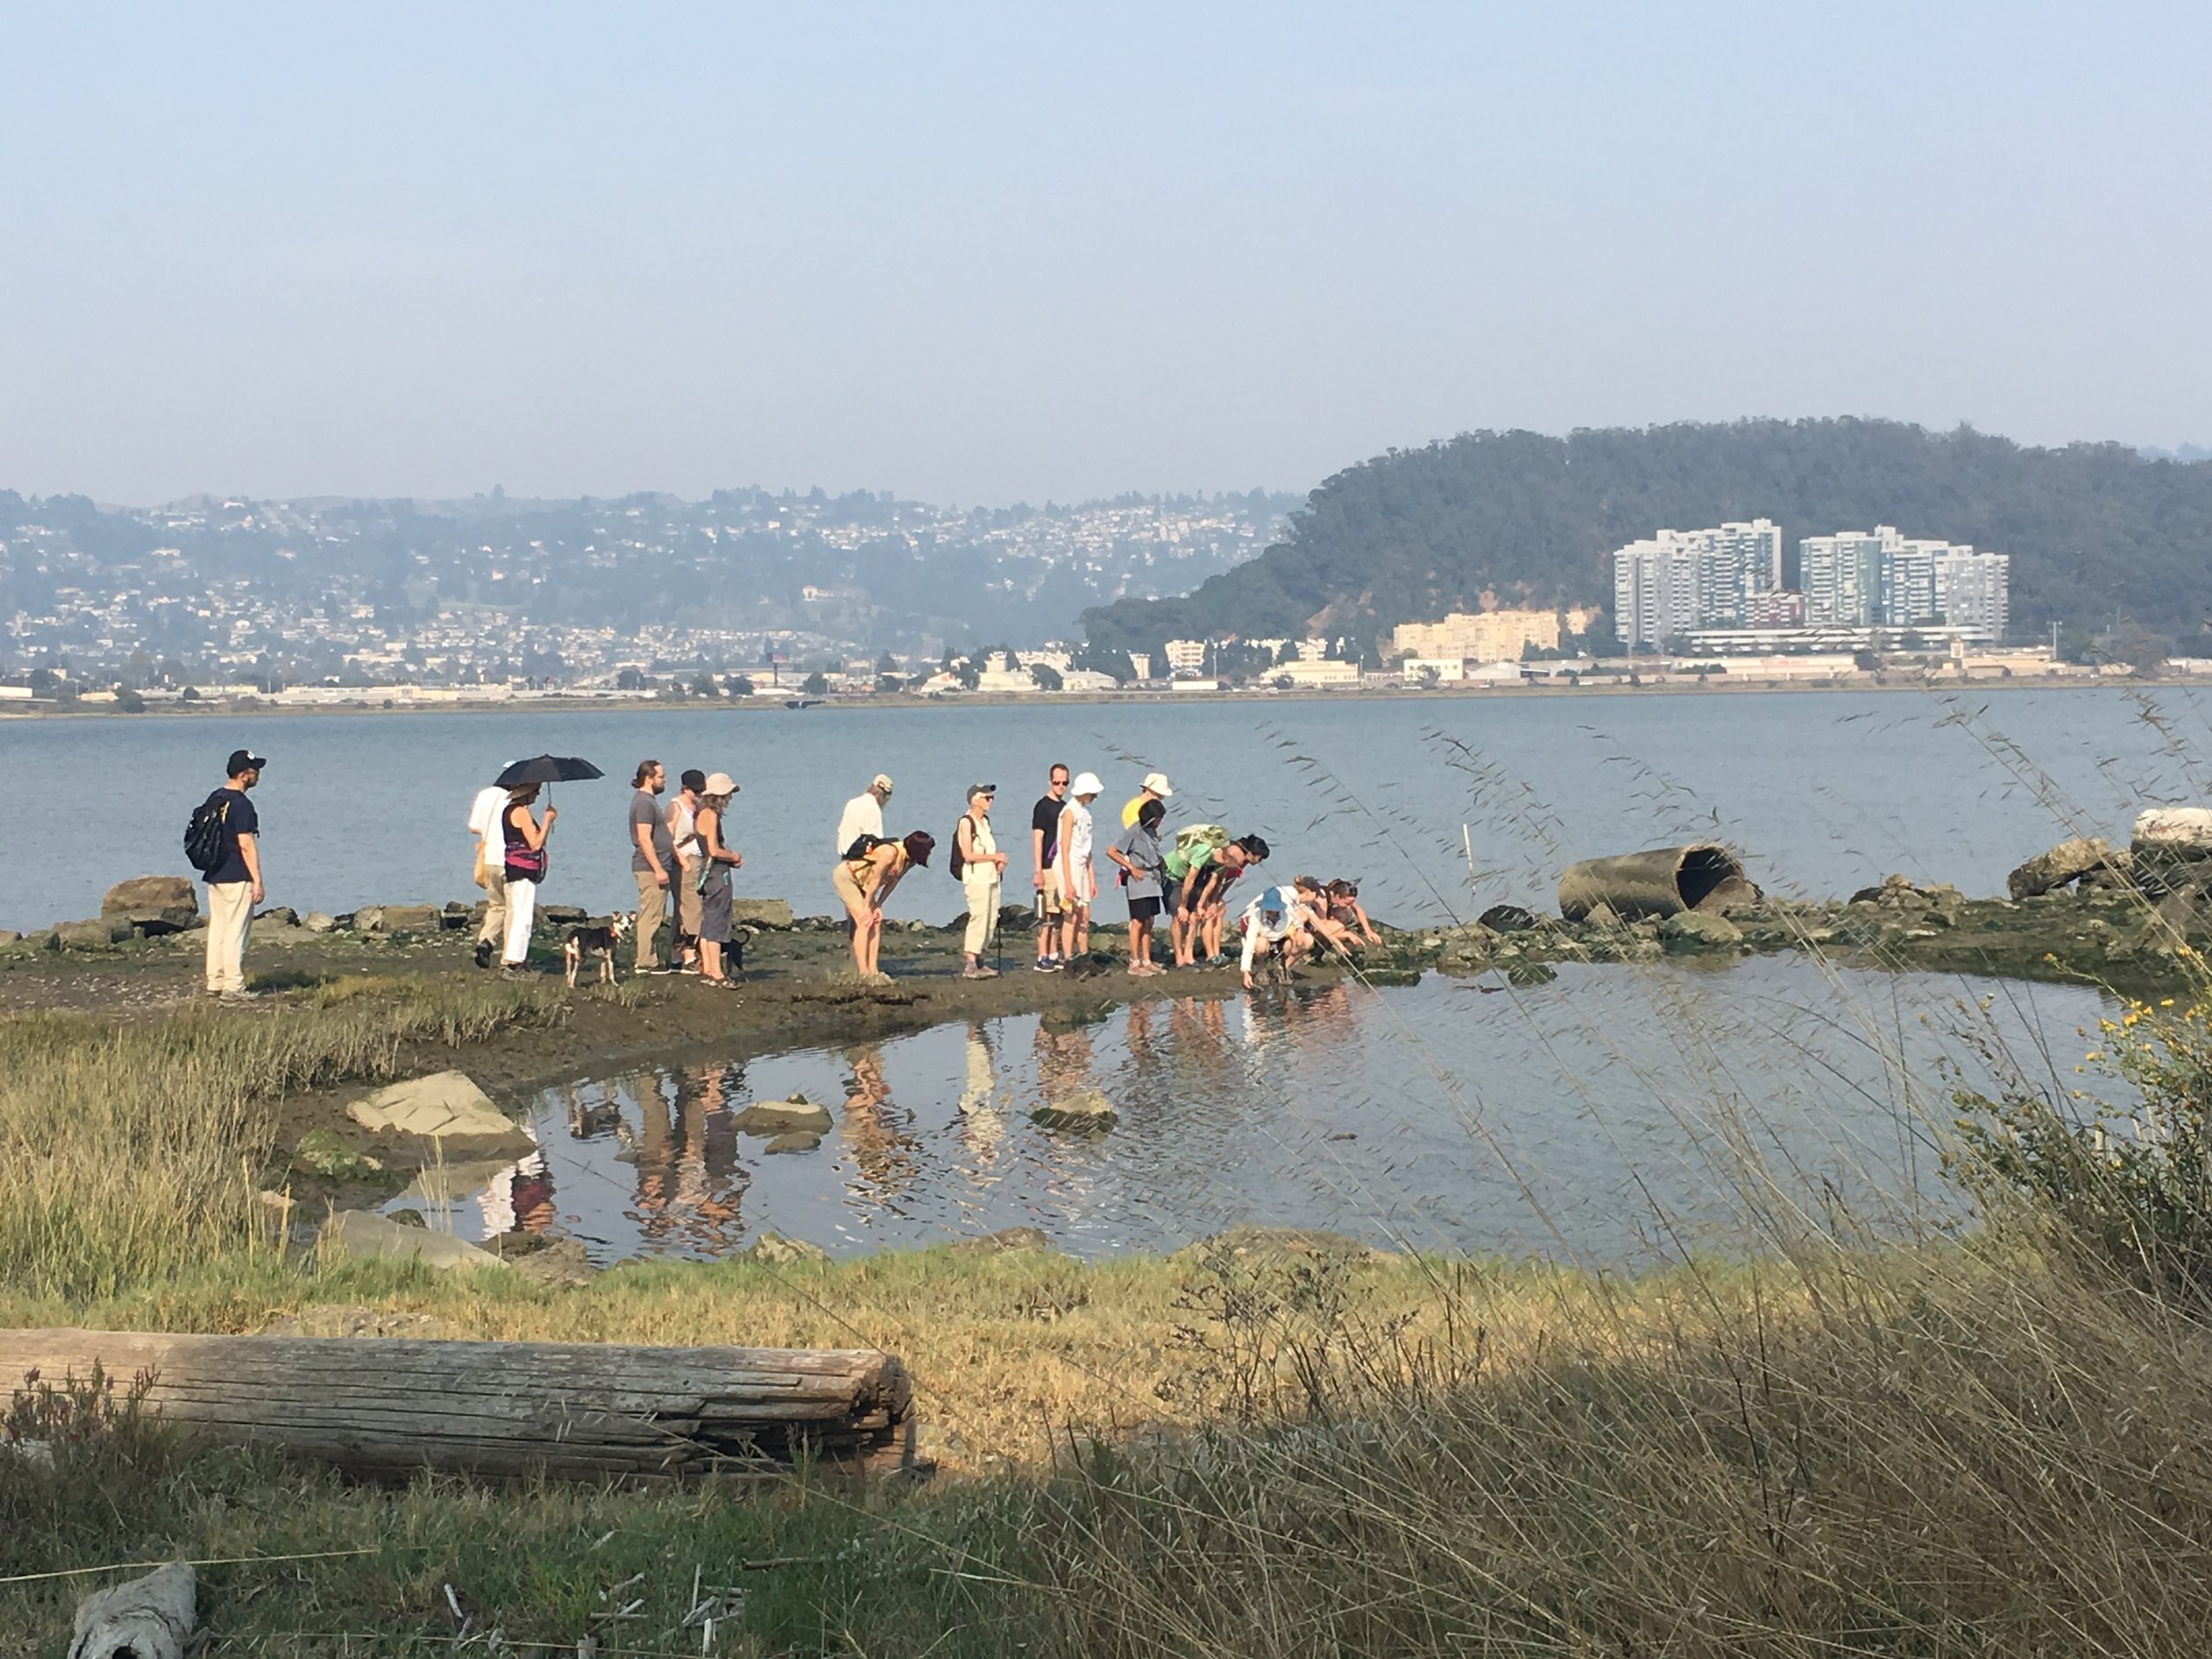 Study diverse ecosystems - The Bulb features salt marshes, mudflats, rocky shore, upland, and beach. Love the Bulb sponsors nature walks to help you enjoy and study these important San Francisco Bay ecosystems.